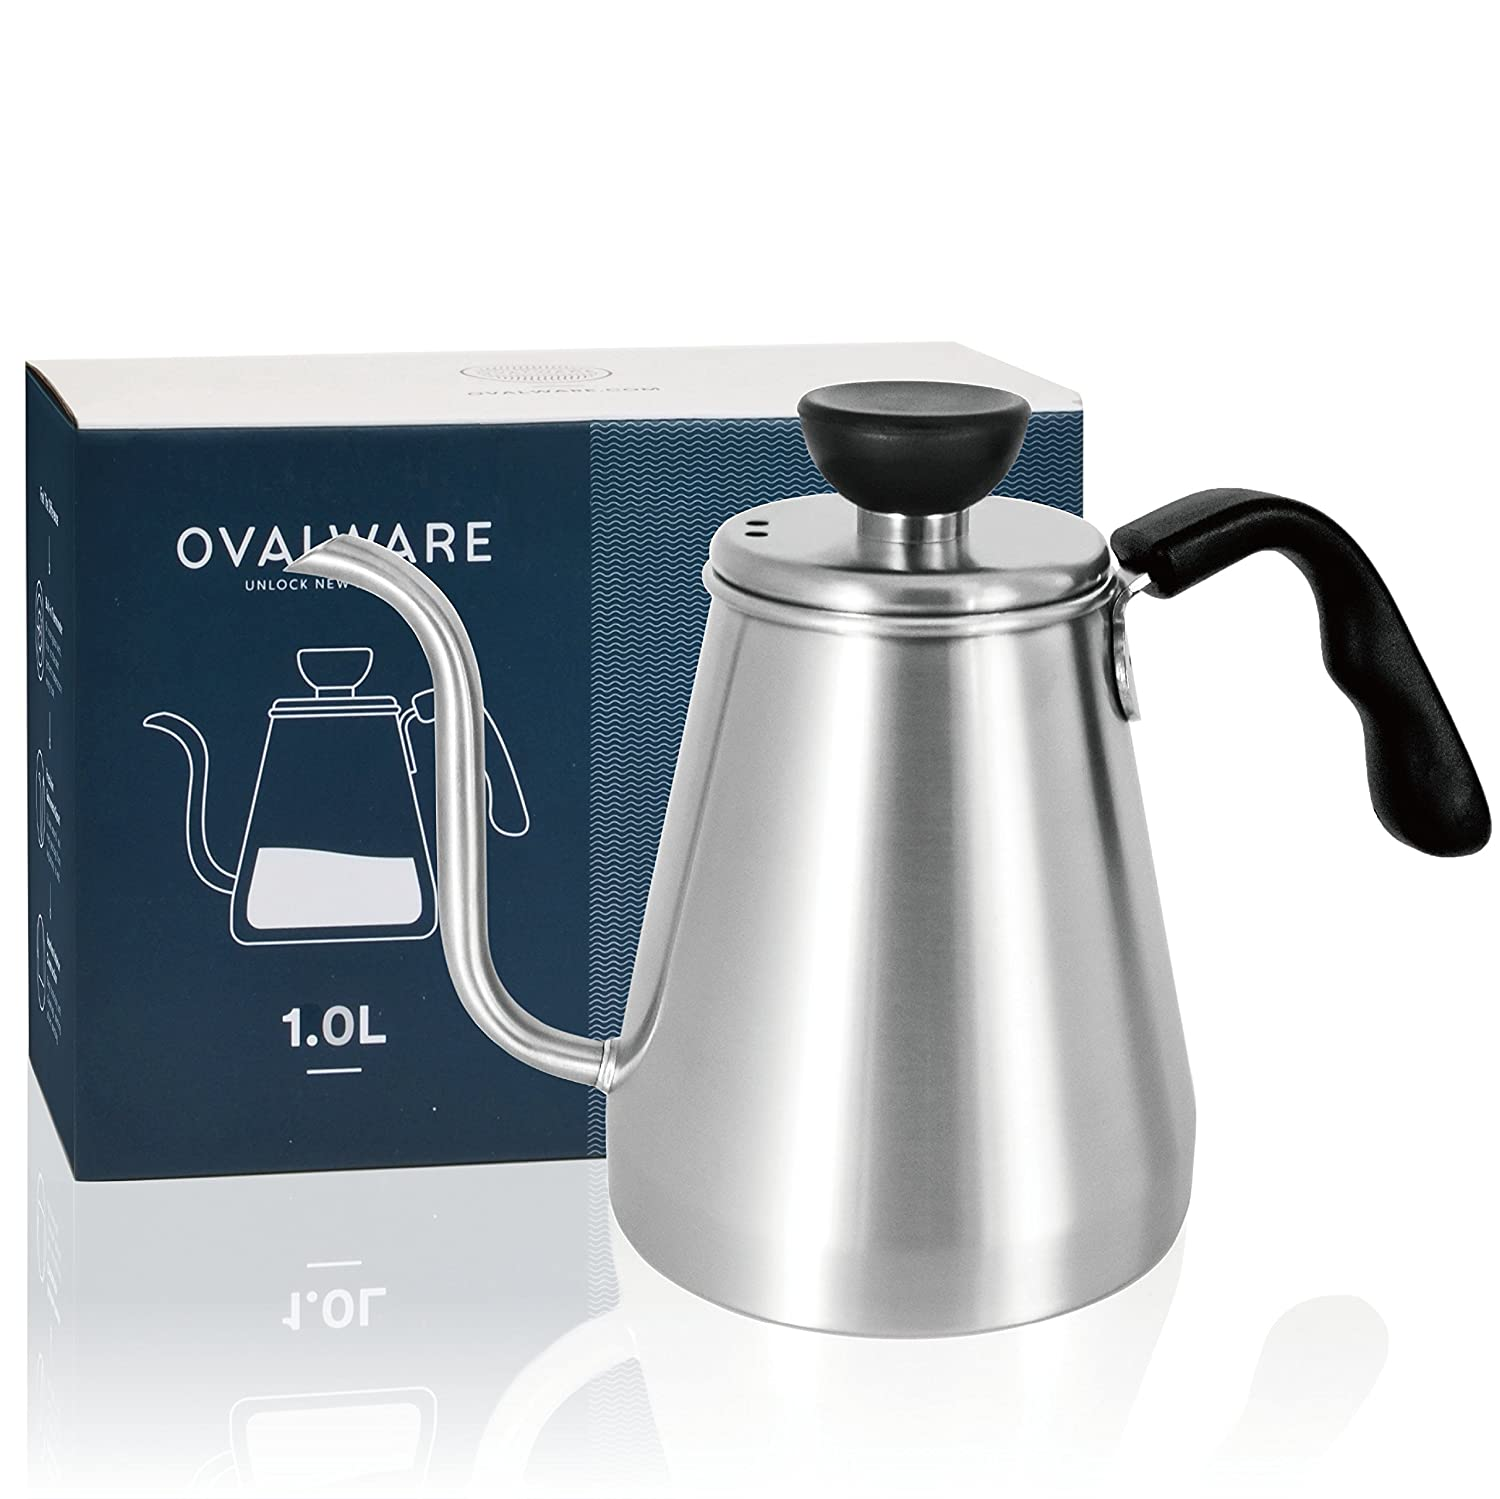 Pour Over Coffee Kettle and Tea Kettle 1.0L / 34oz - Ovalware RJ3 Stainless Steel Drip Kettle with Precision Gooseneck Spout for Home Brewing, Camping and Traveling